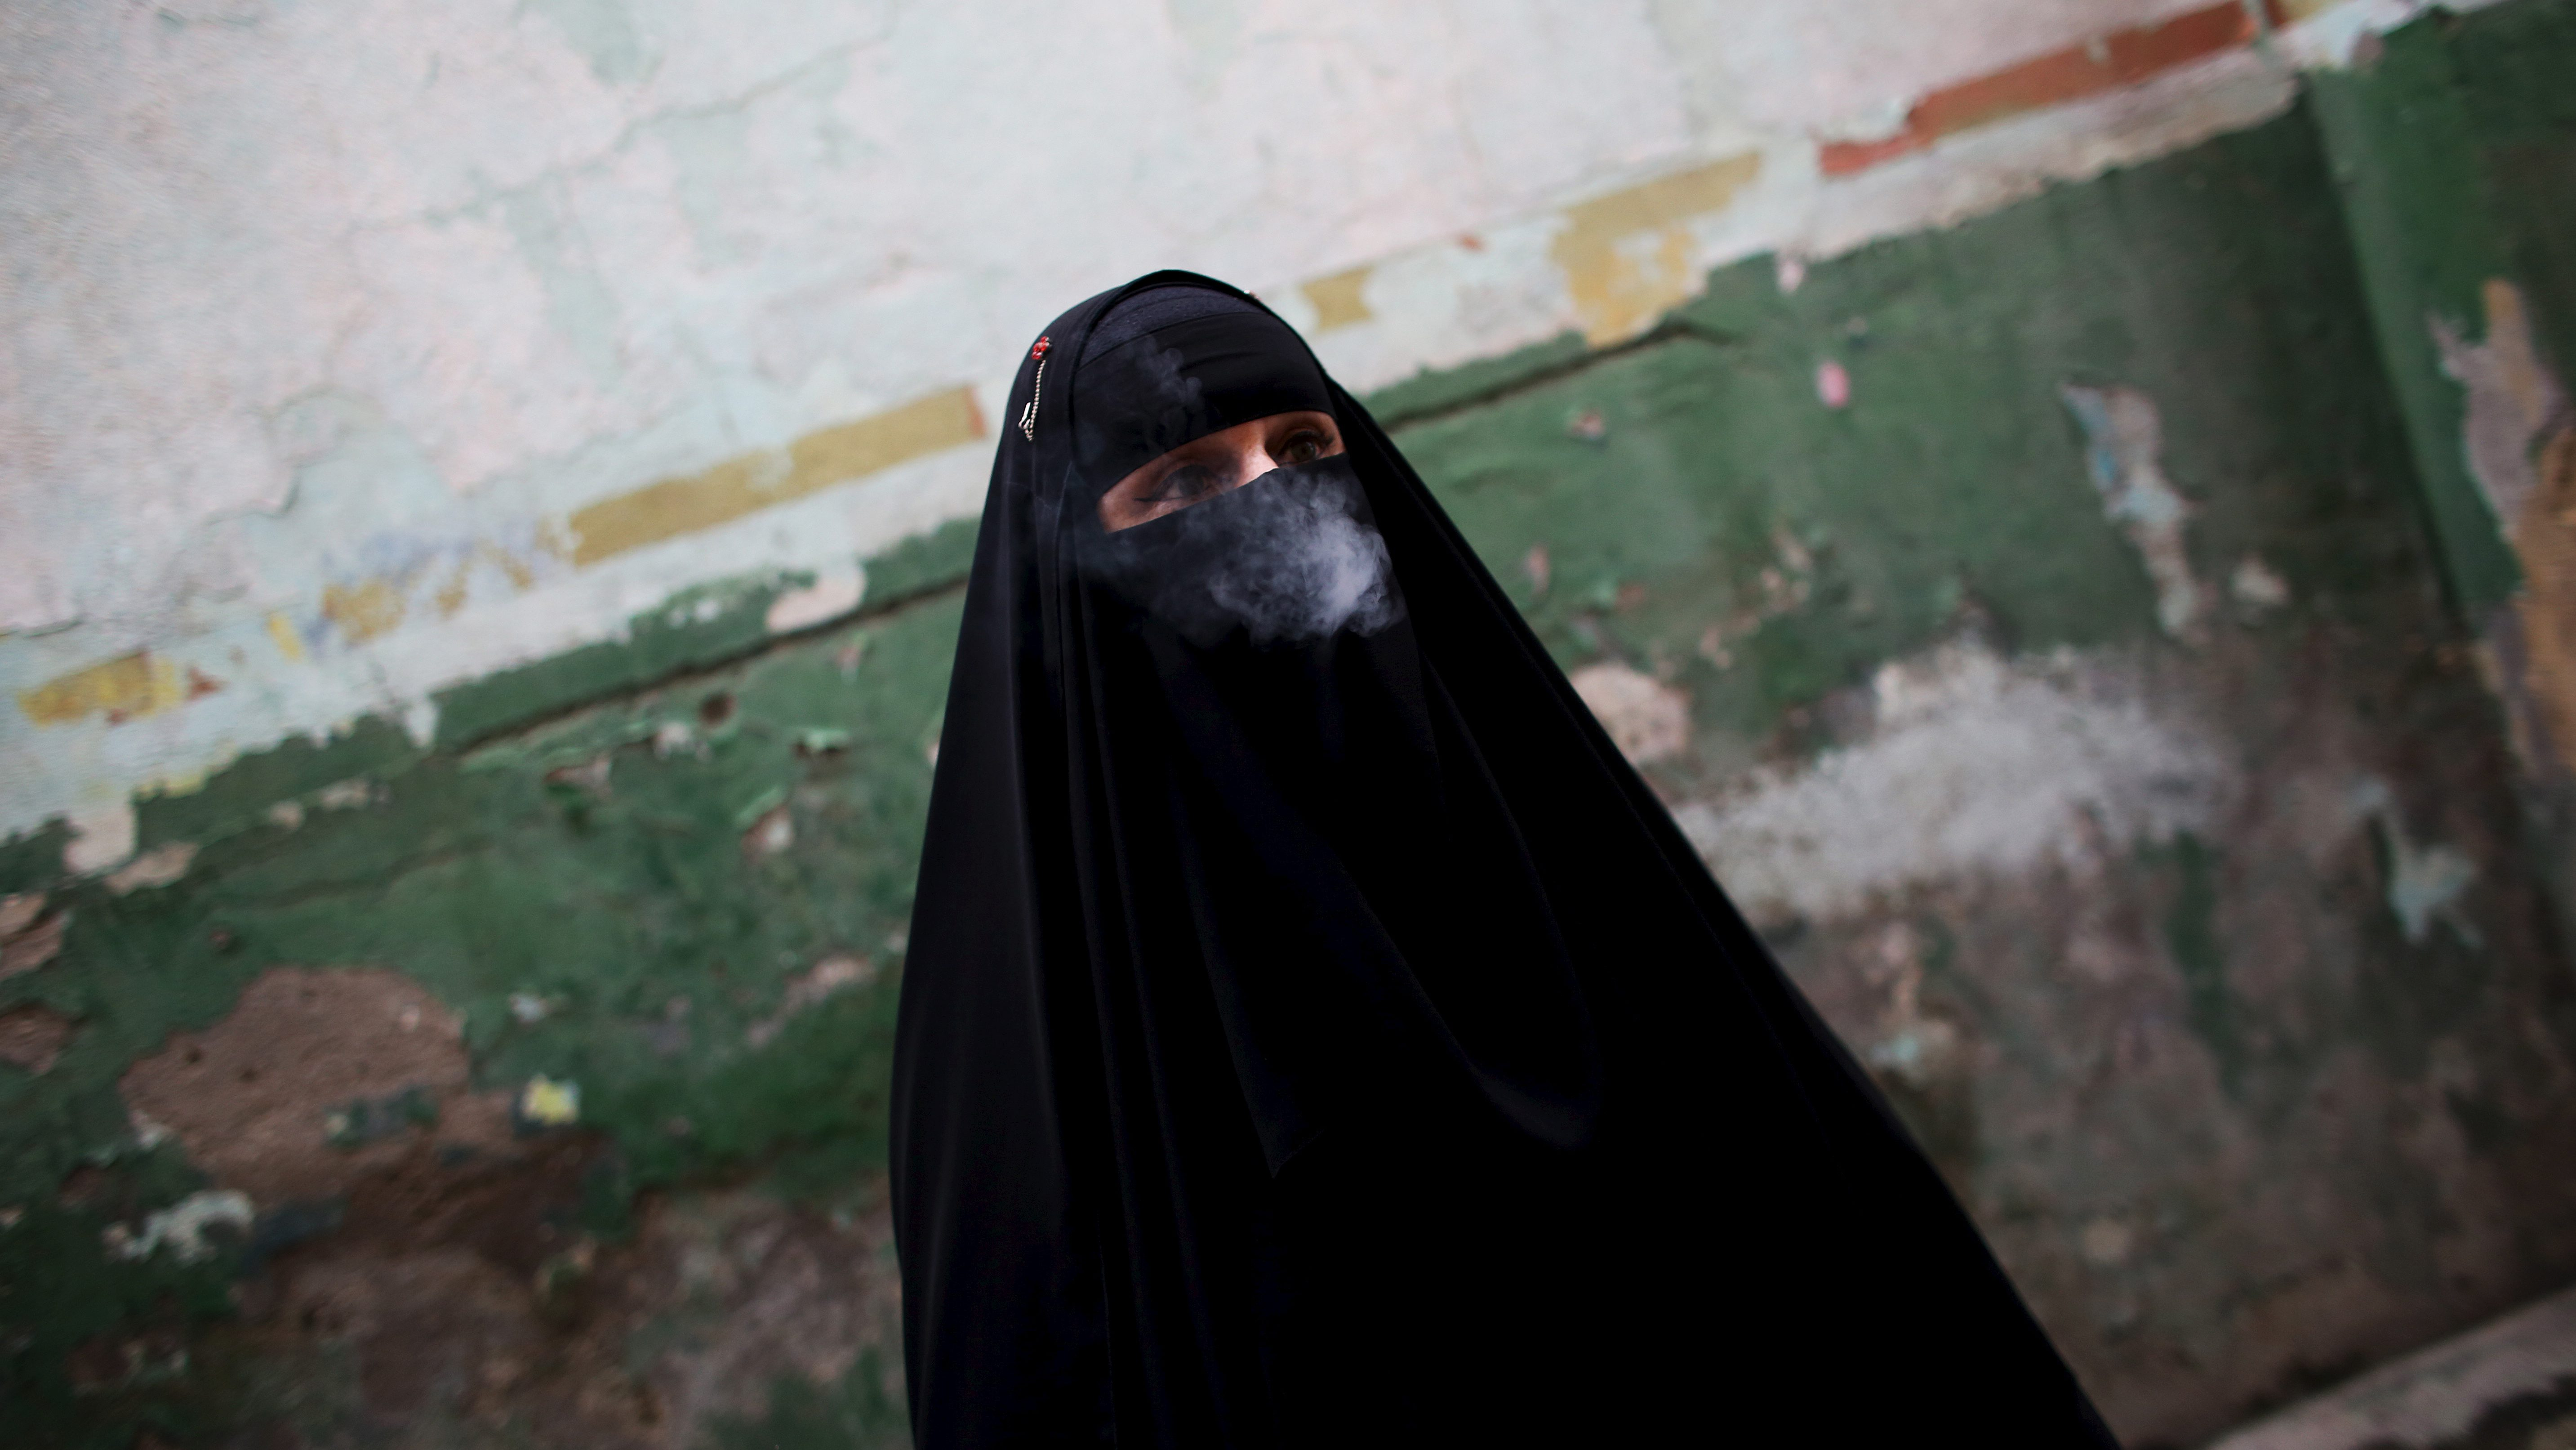 """Gisele Marie, a Muslim woman and professional heavy metal musician, smokes a cigarette before a fund raising concert for Syrian refugges in Brazil, in Rio de Janeiro November 8, 2015. Based in Sao Paulo, Marie, 42, is the granddaughter of German Catholics, and converted to Islam several months after her father passed away in 2009. Marie, who wears the Burka, has been fronting her brothers' heavy metal band """"Spectrus"""" since 2012. """"People do not expect to see a Muslim woman who uses a burqa, practices the religion properly and is a professional guitarist who plays in a heavy metal band, so many people are shocked by it. But other people are curious and find it interesting, and others think that it is cool, but definitely, many people are shocked,"""" said Marie. Picture taken November 8, 2015. REUTERS/Nacho Doce  - RTS66WL"""